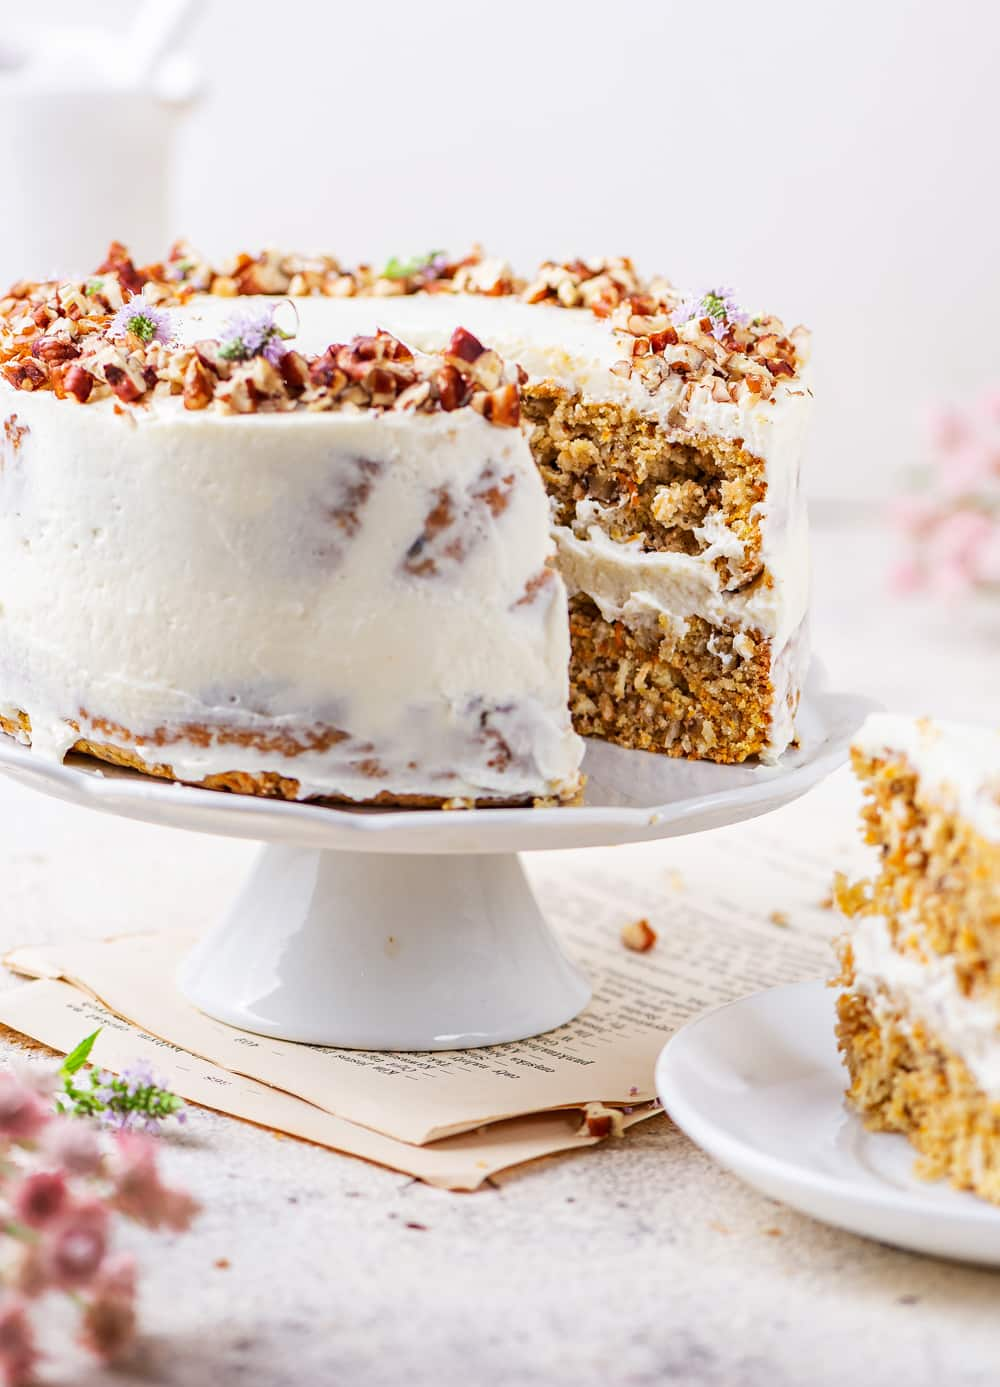 A carrot cake that has had a slice cut from it.